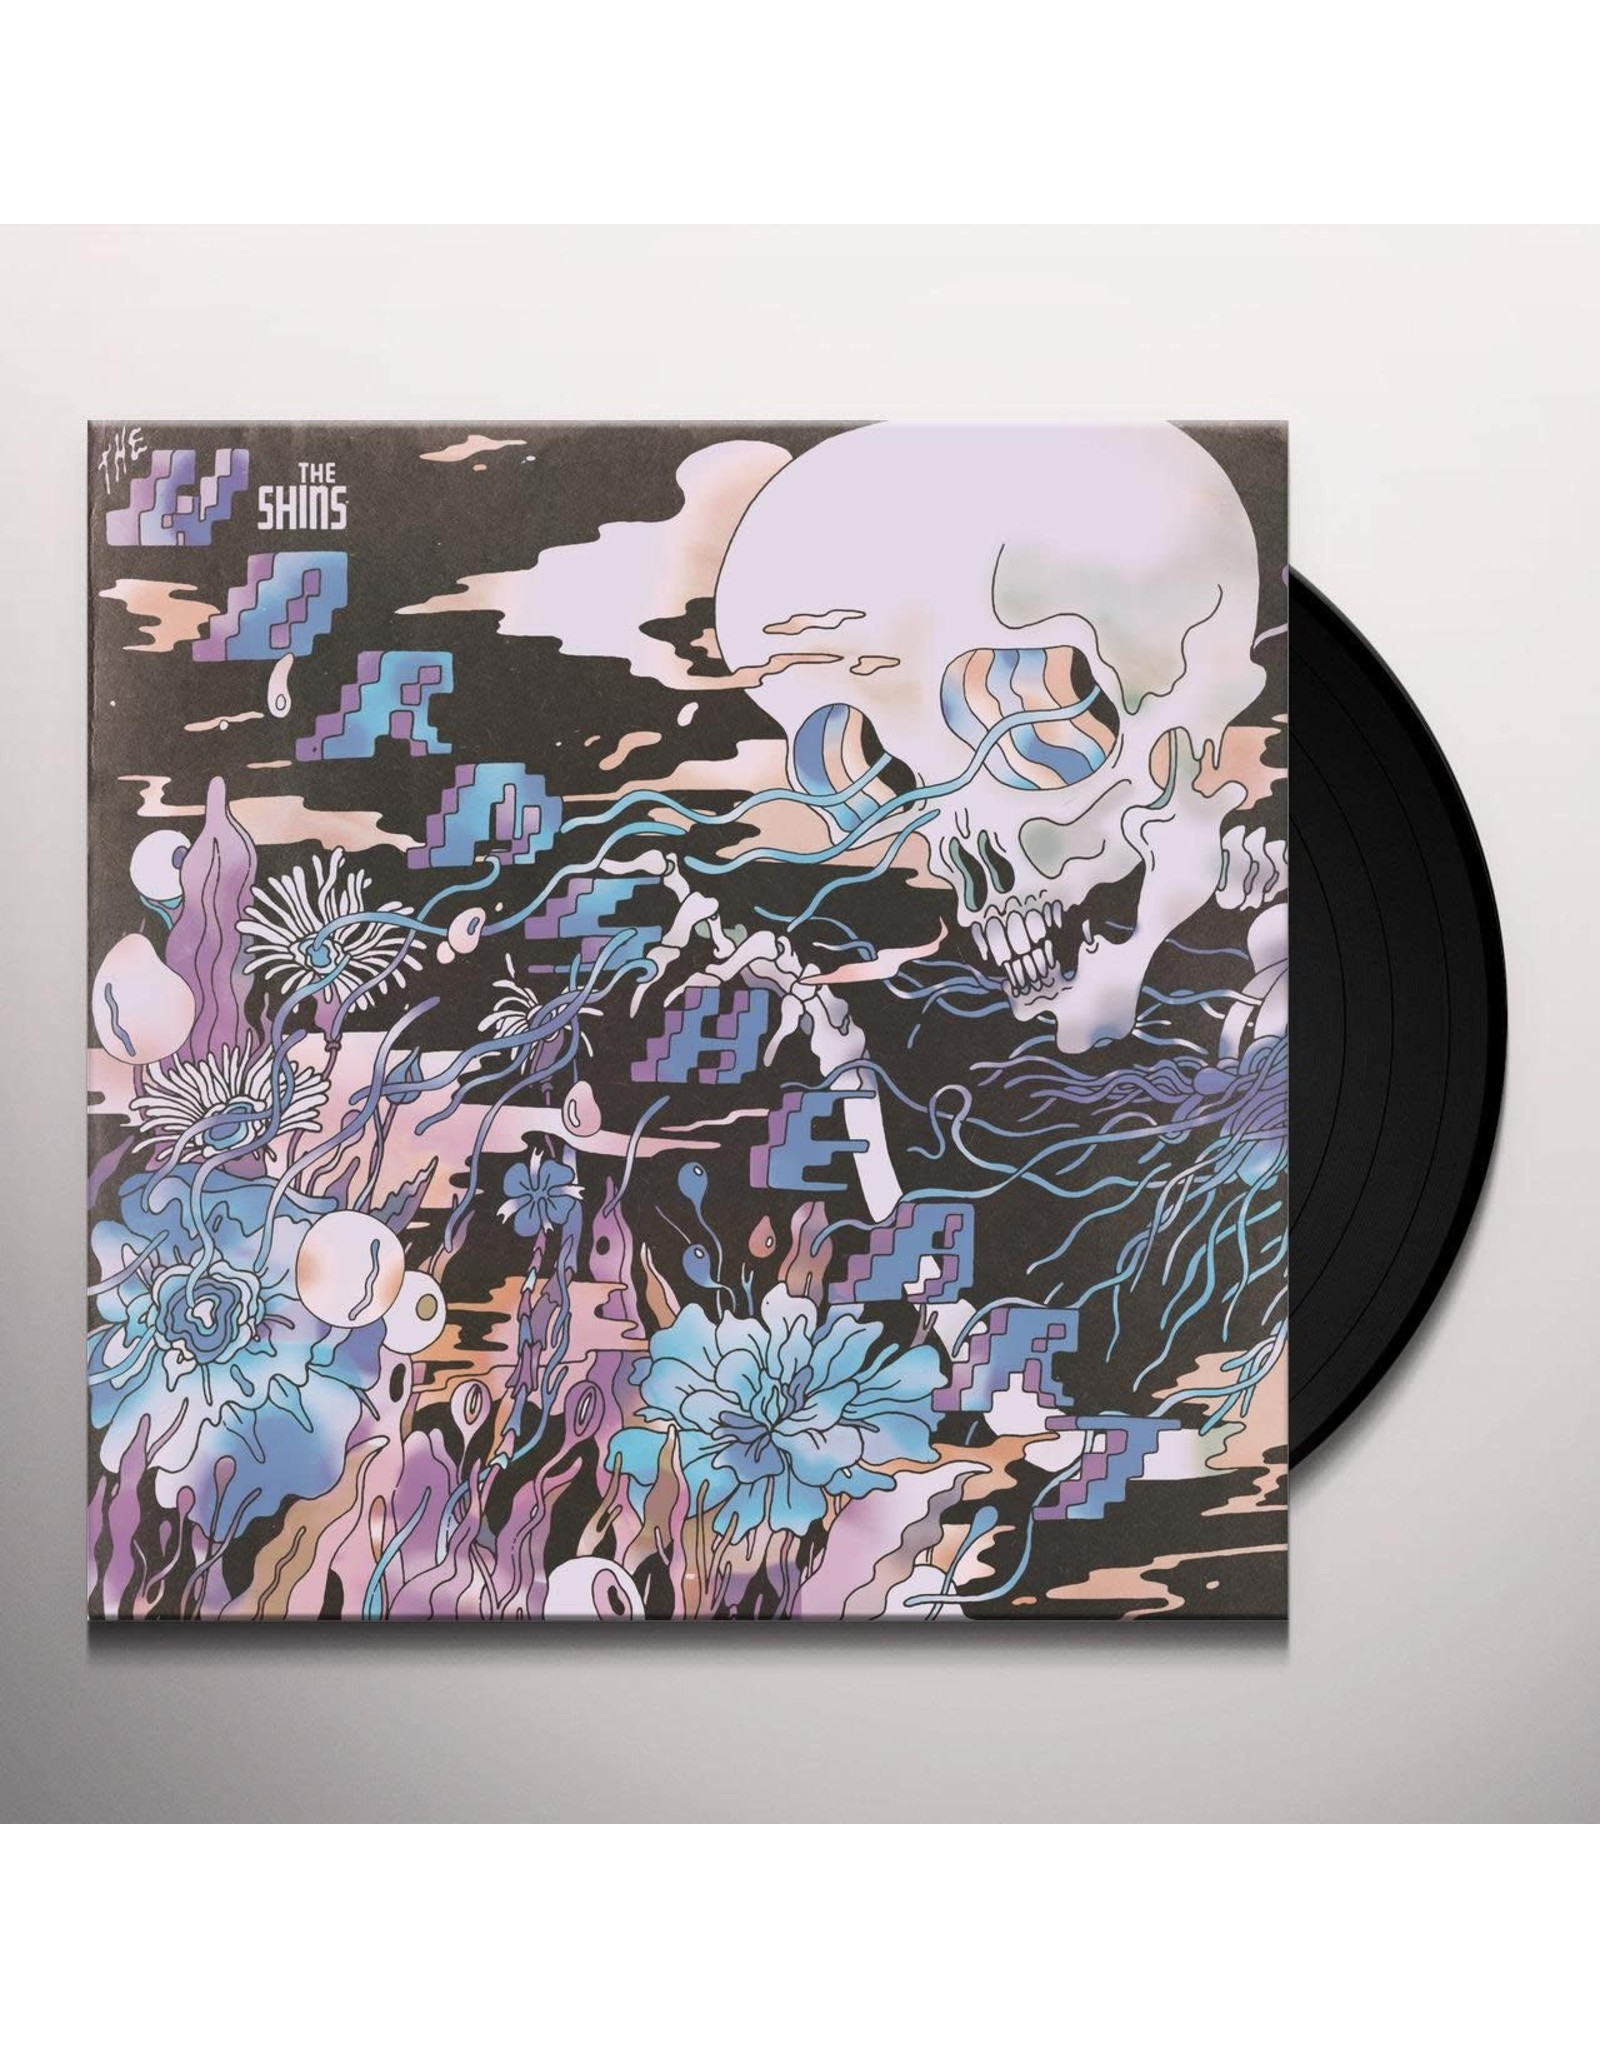 Shins - The Worms Heart LP